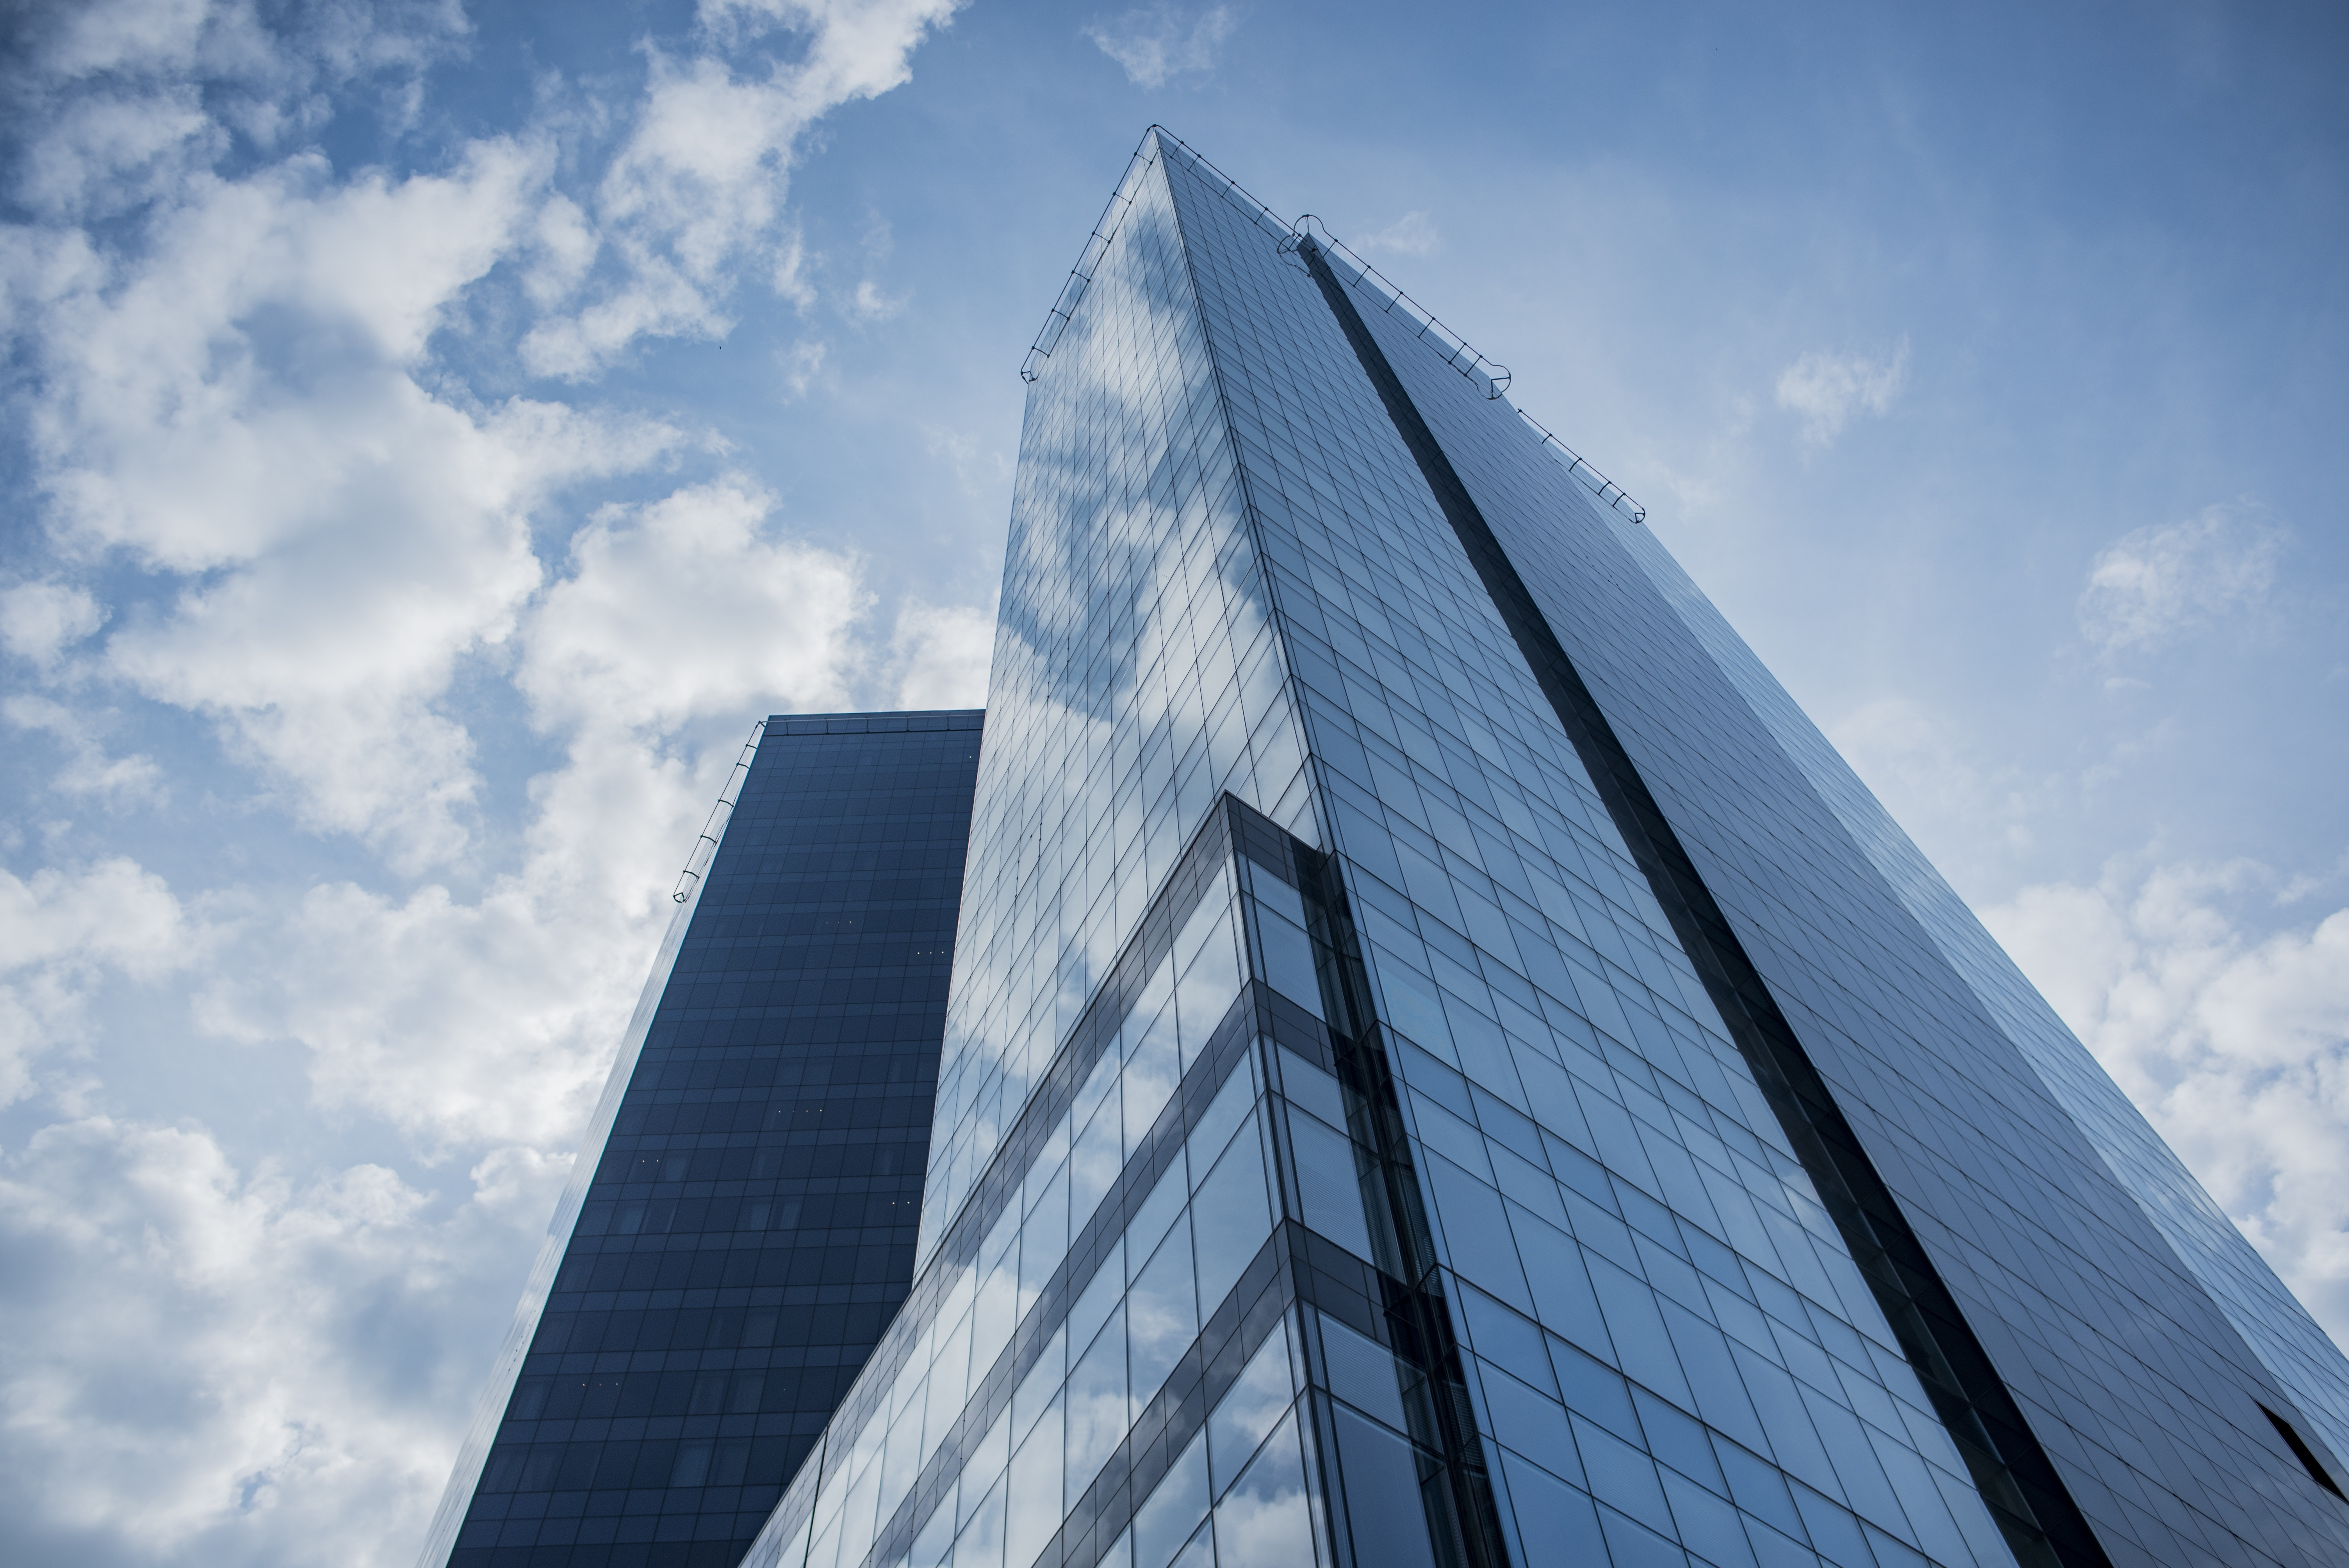 Low Angle Photography Of Building Free Stock Photo: Free Stock Photo Of Architecture, Building, Low Angle Shot